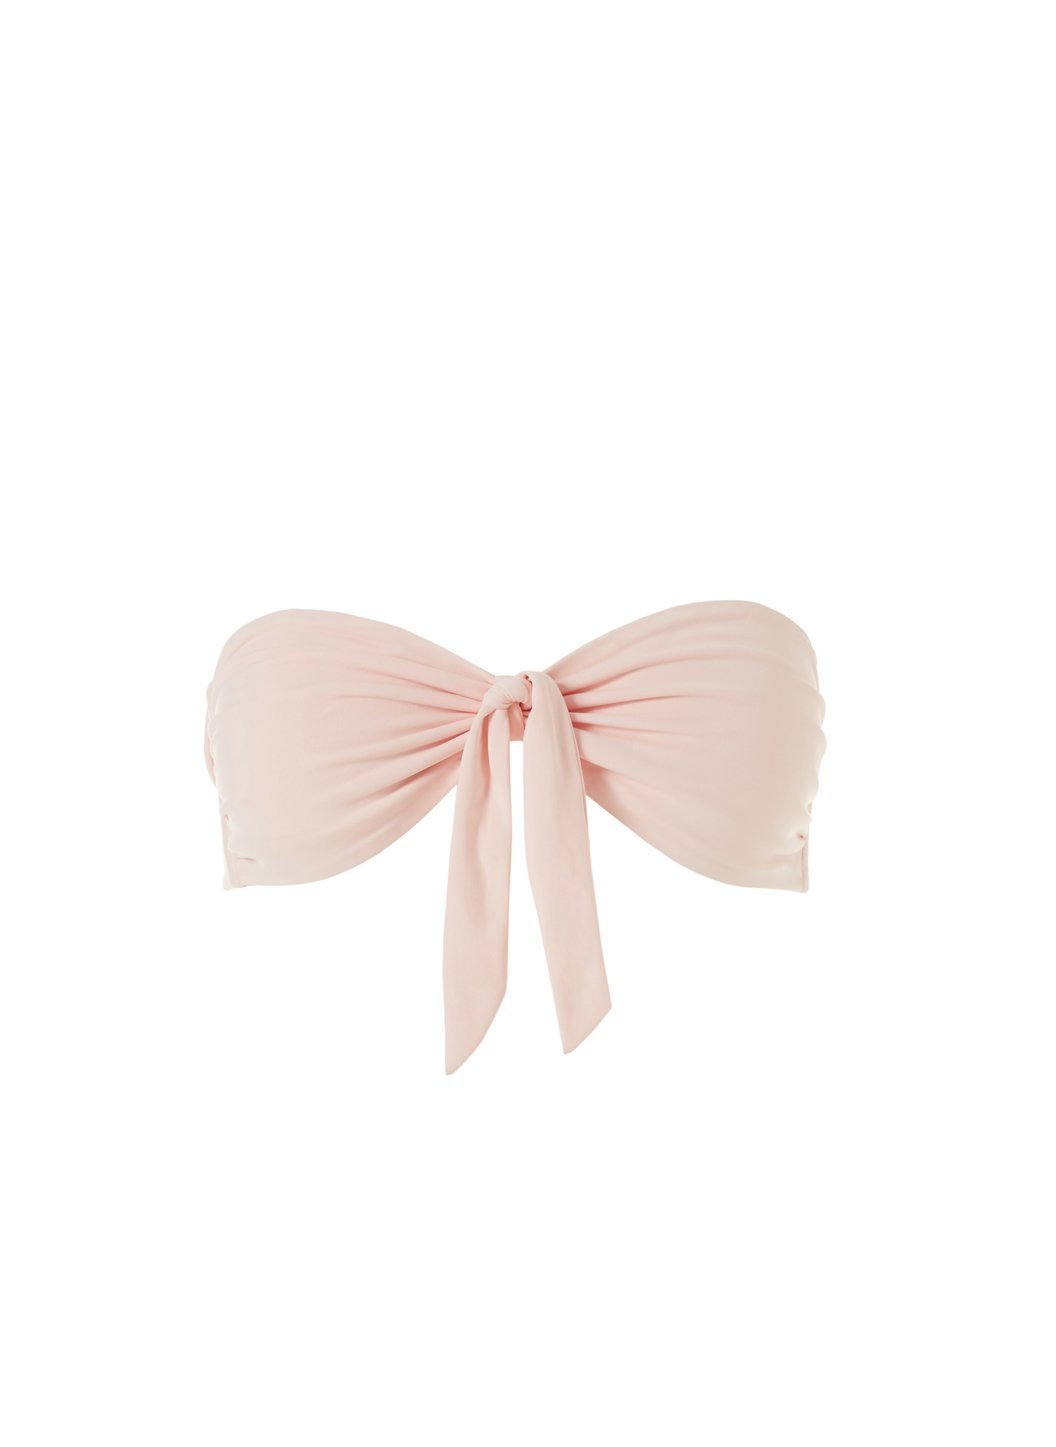 caribe-blush-bikini-top - Cut-Out